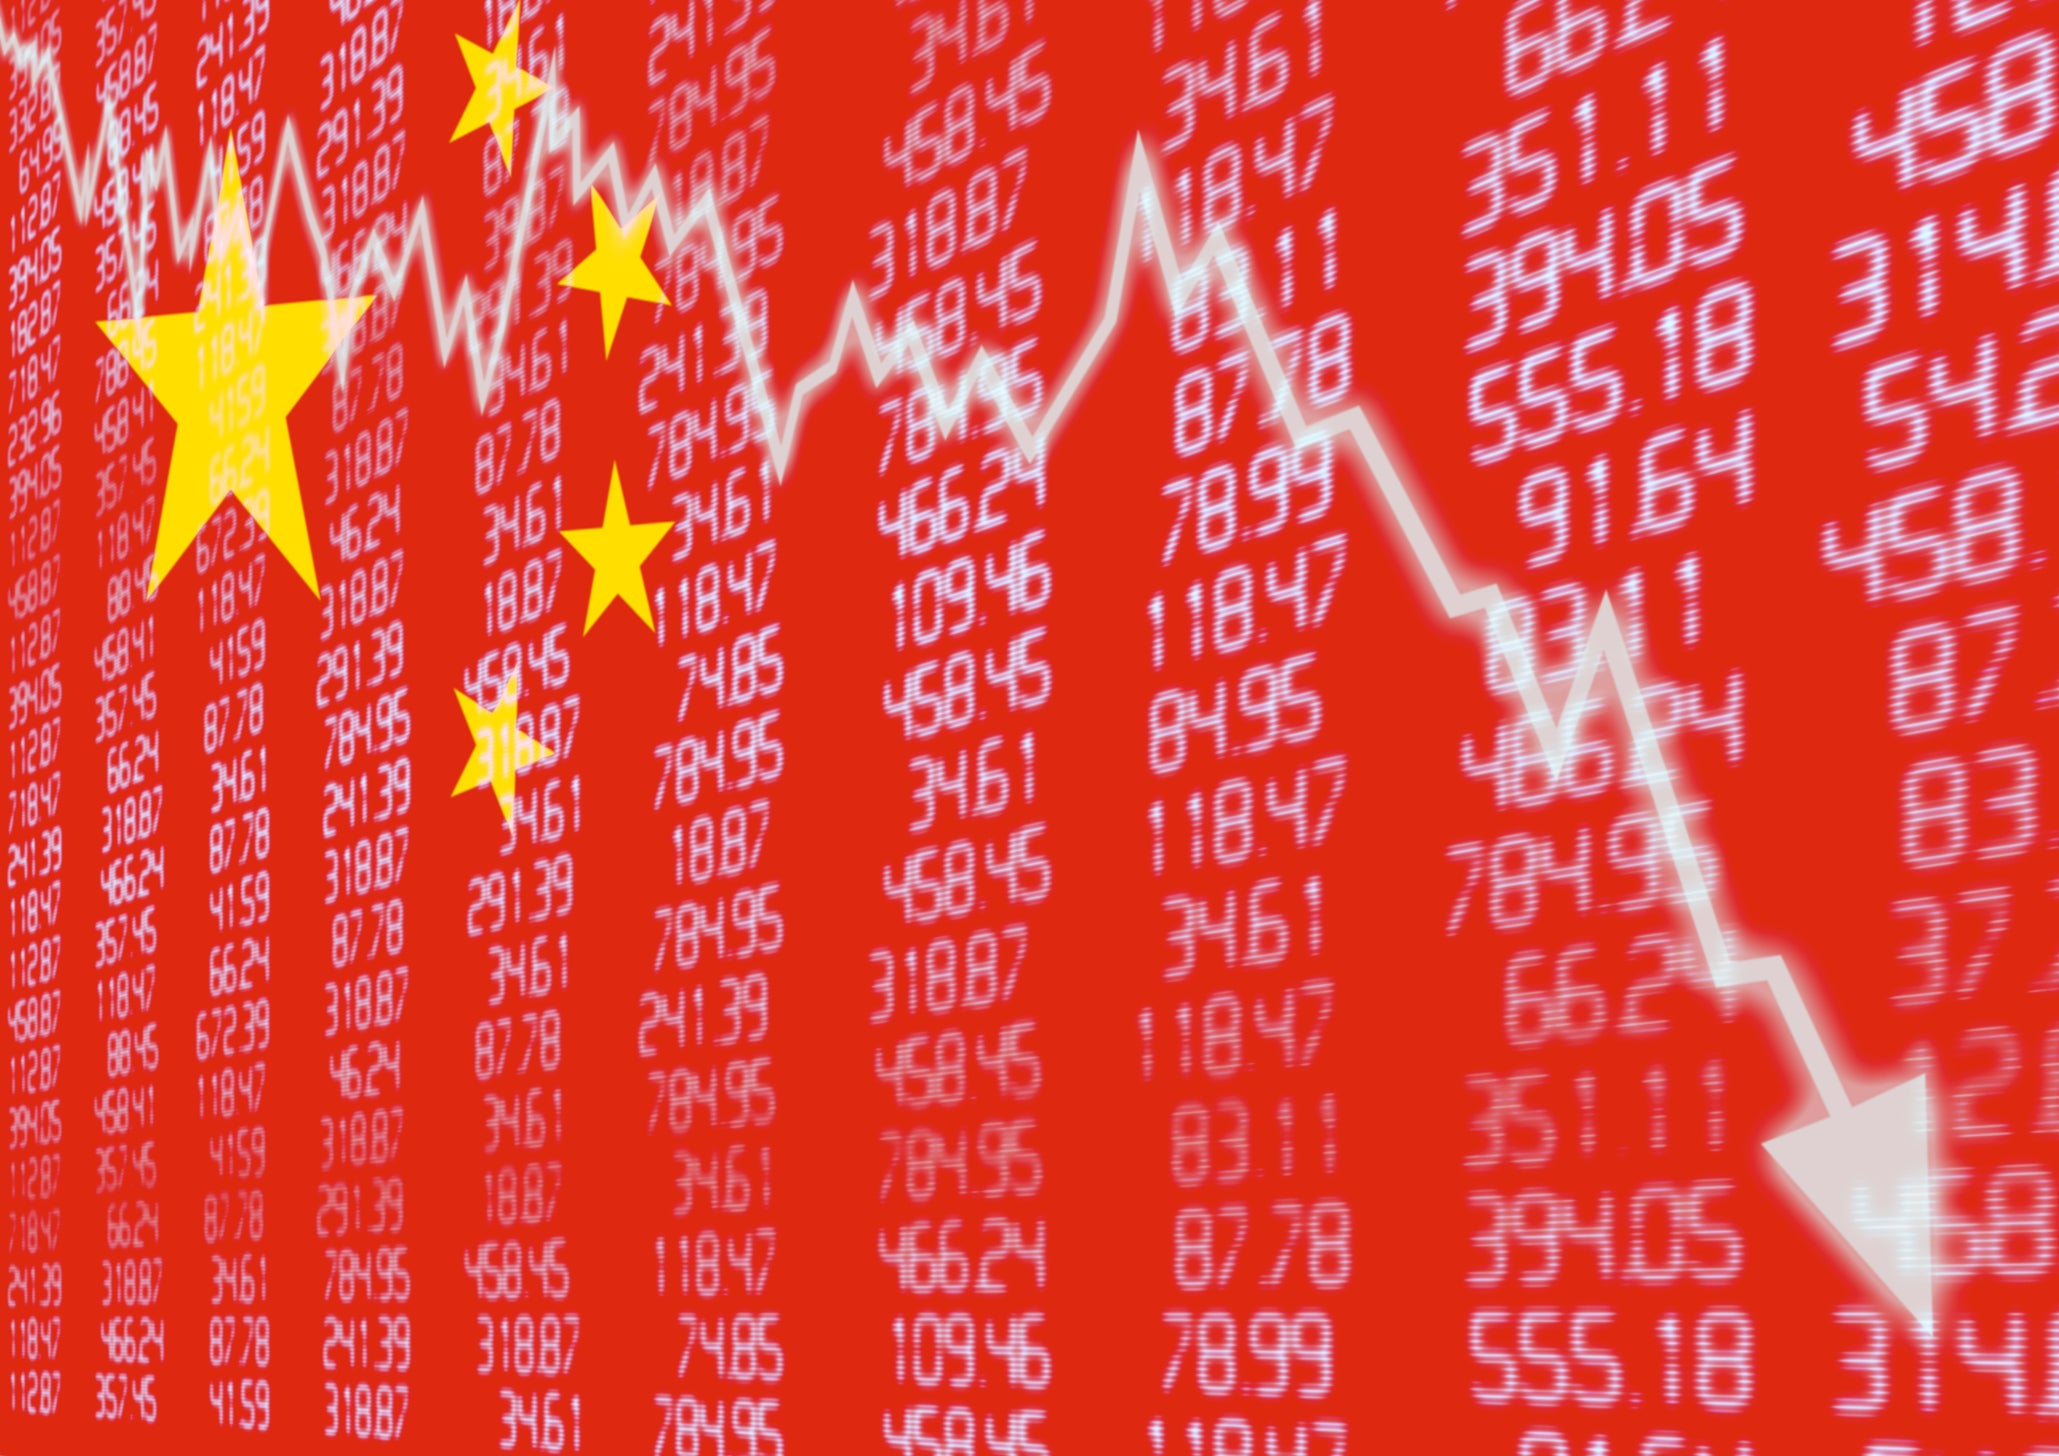 3 Top Chinese Stocks to Watch in February | The Motley Fool